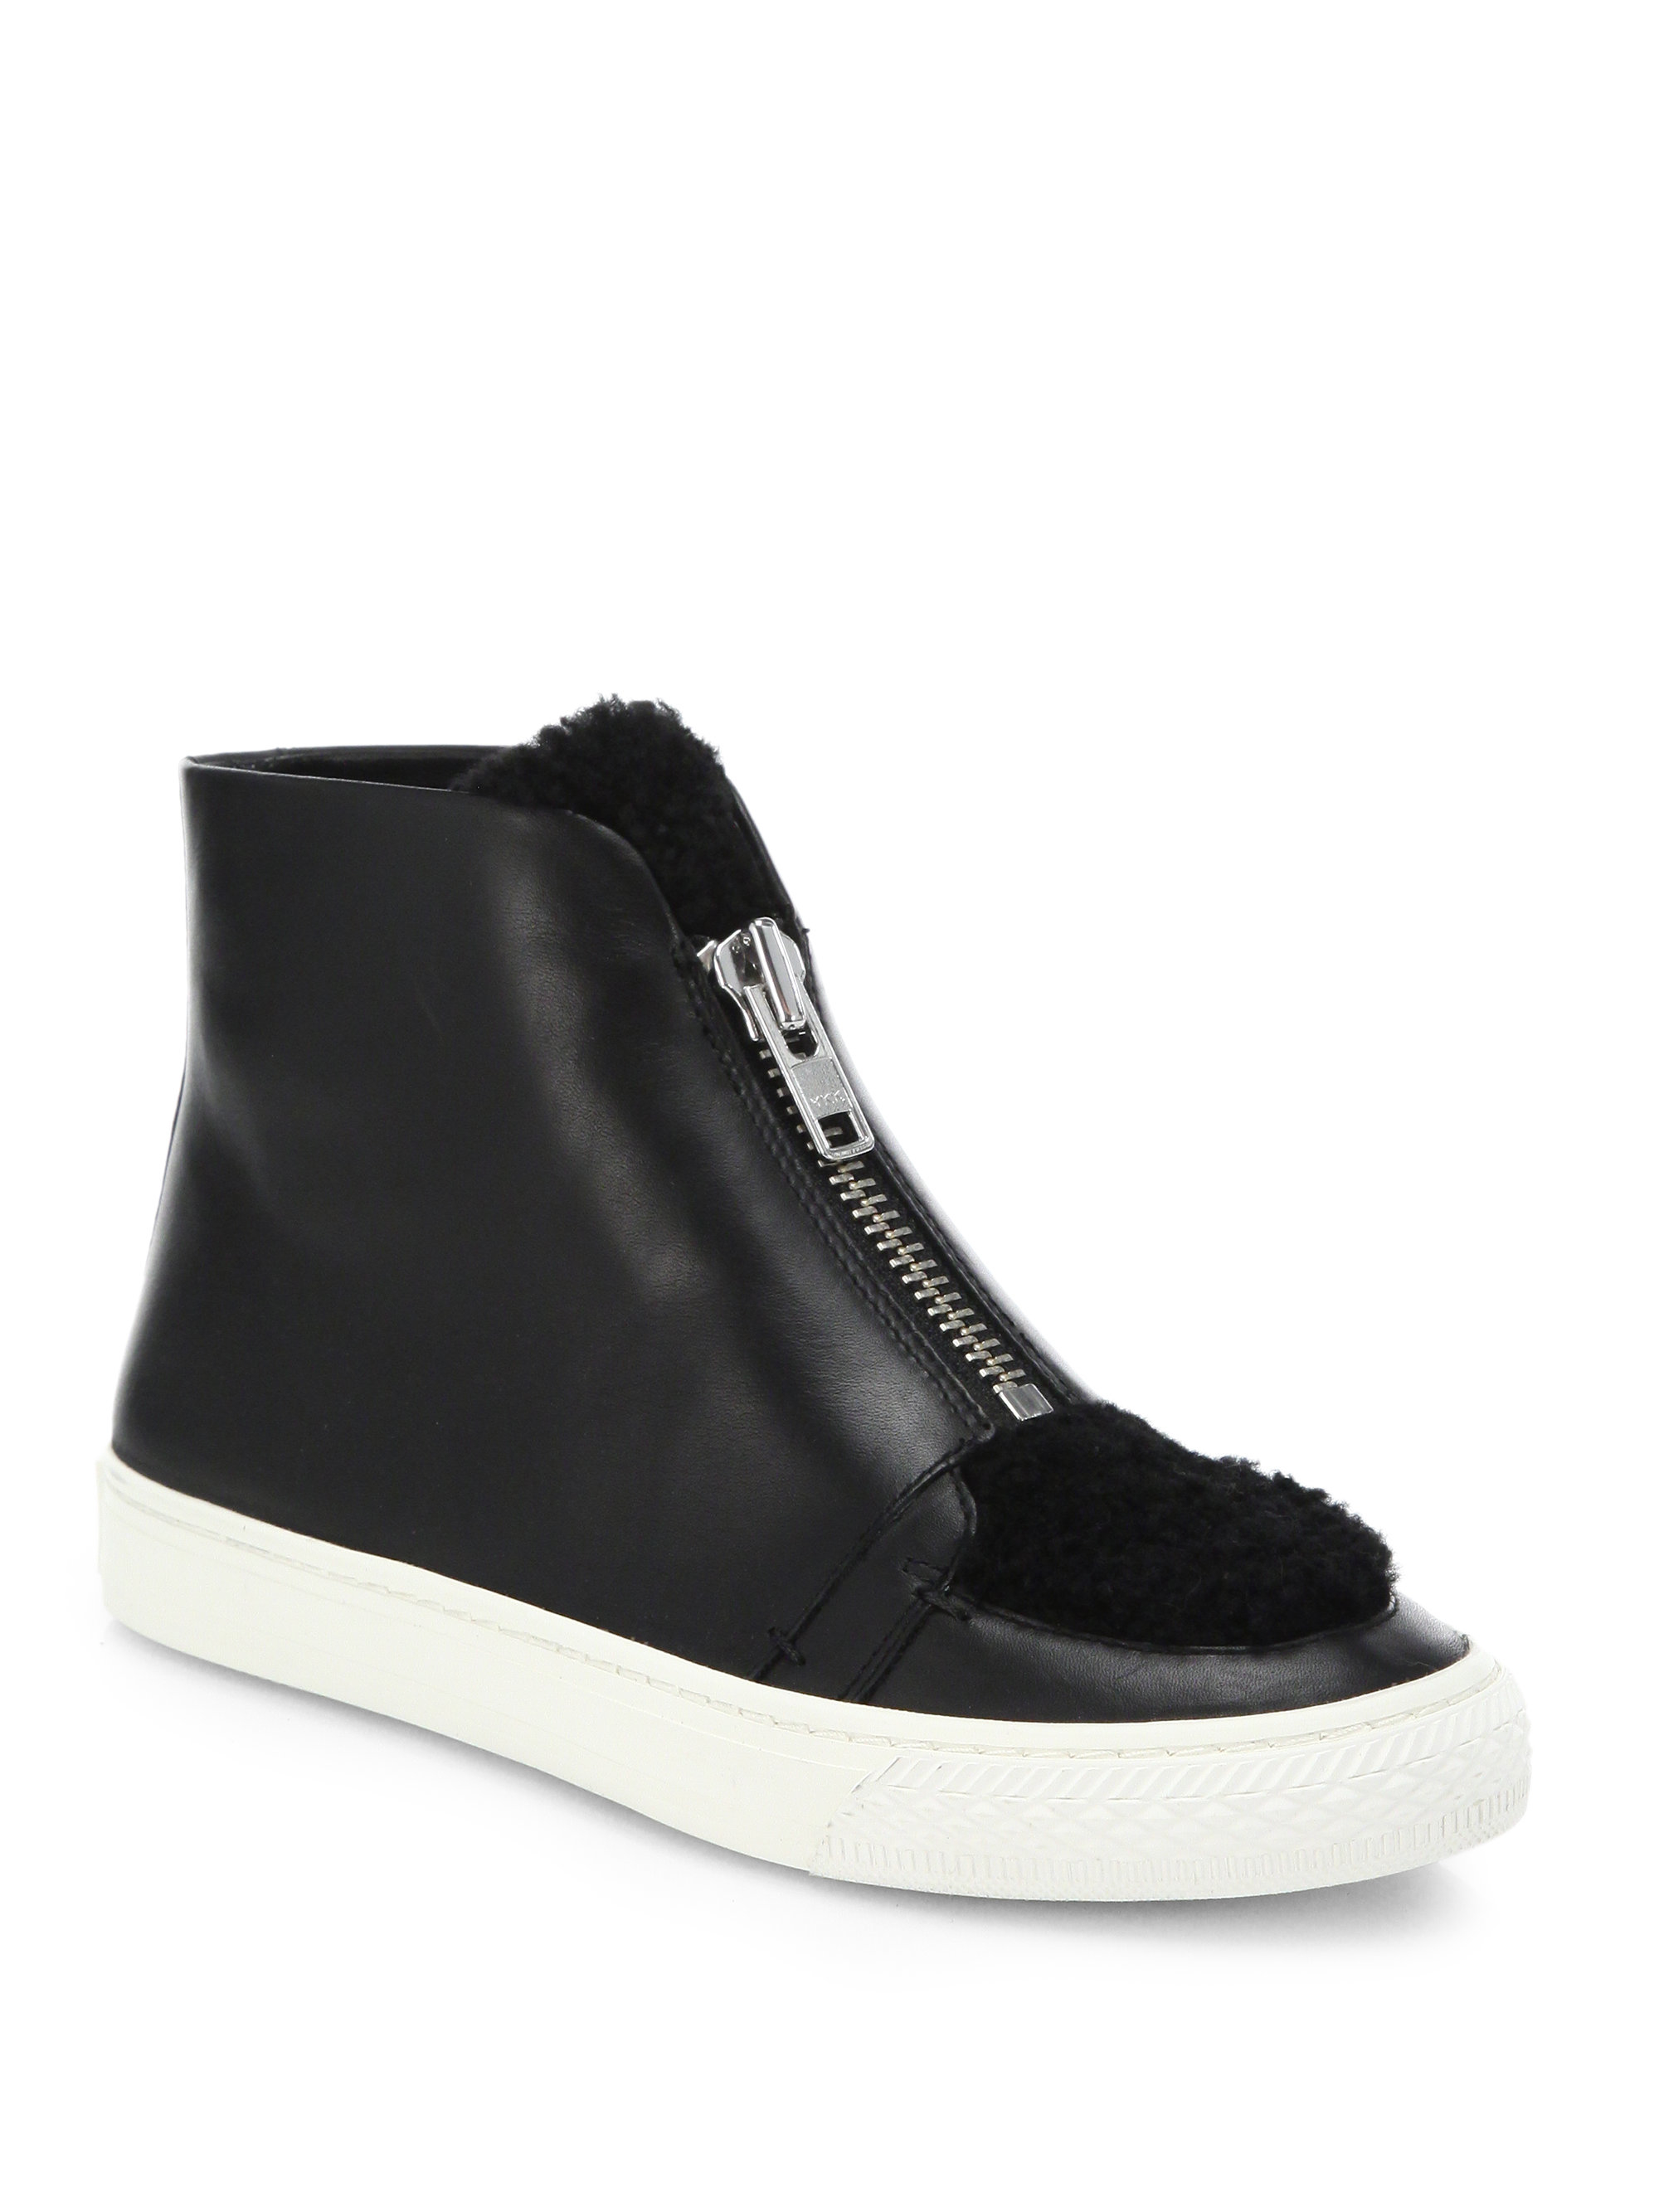 Loeffler Randall Leather High-Top Sneakers shop for online KOnLfxeHgy